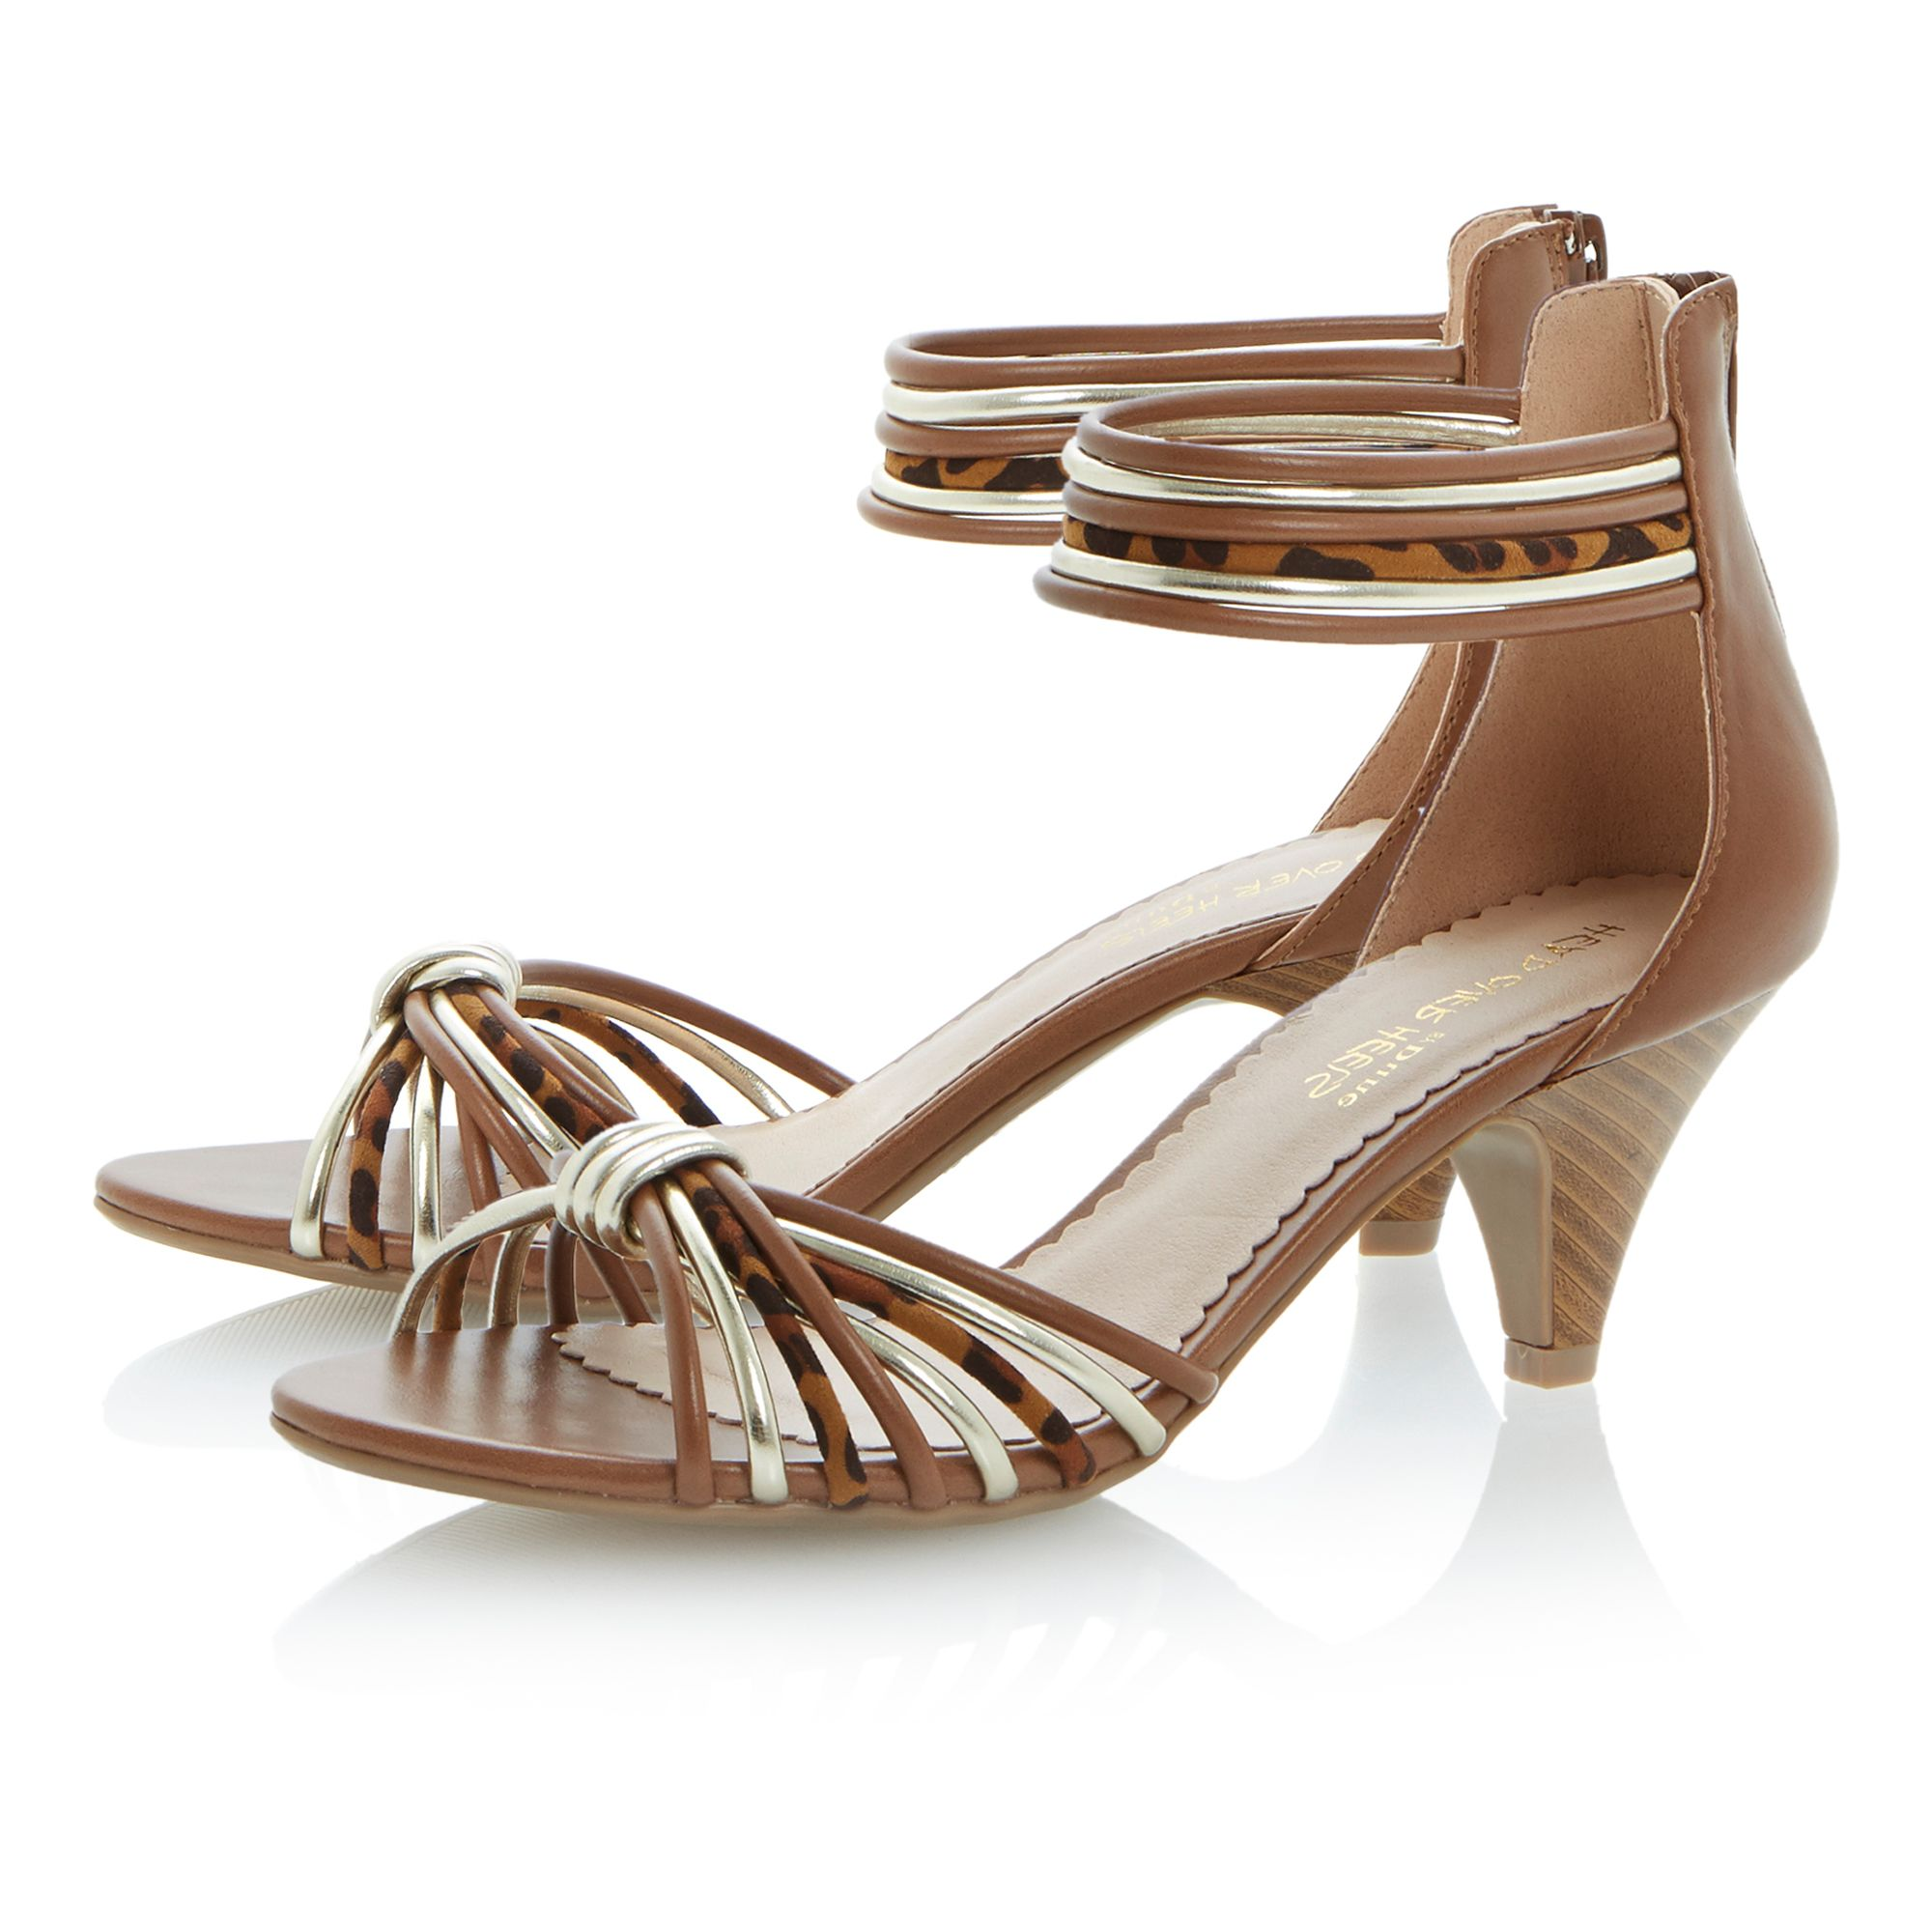 Gelato round toe stacked heel knot sandals